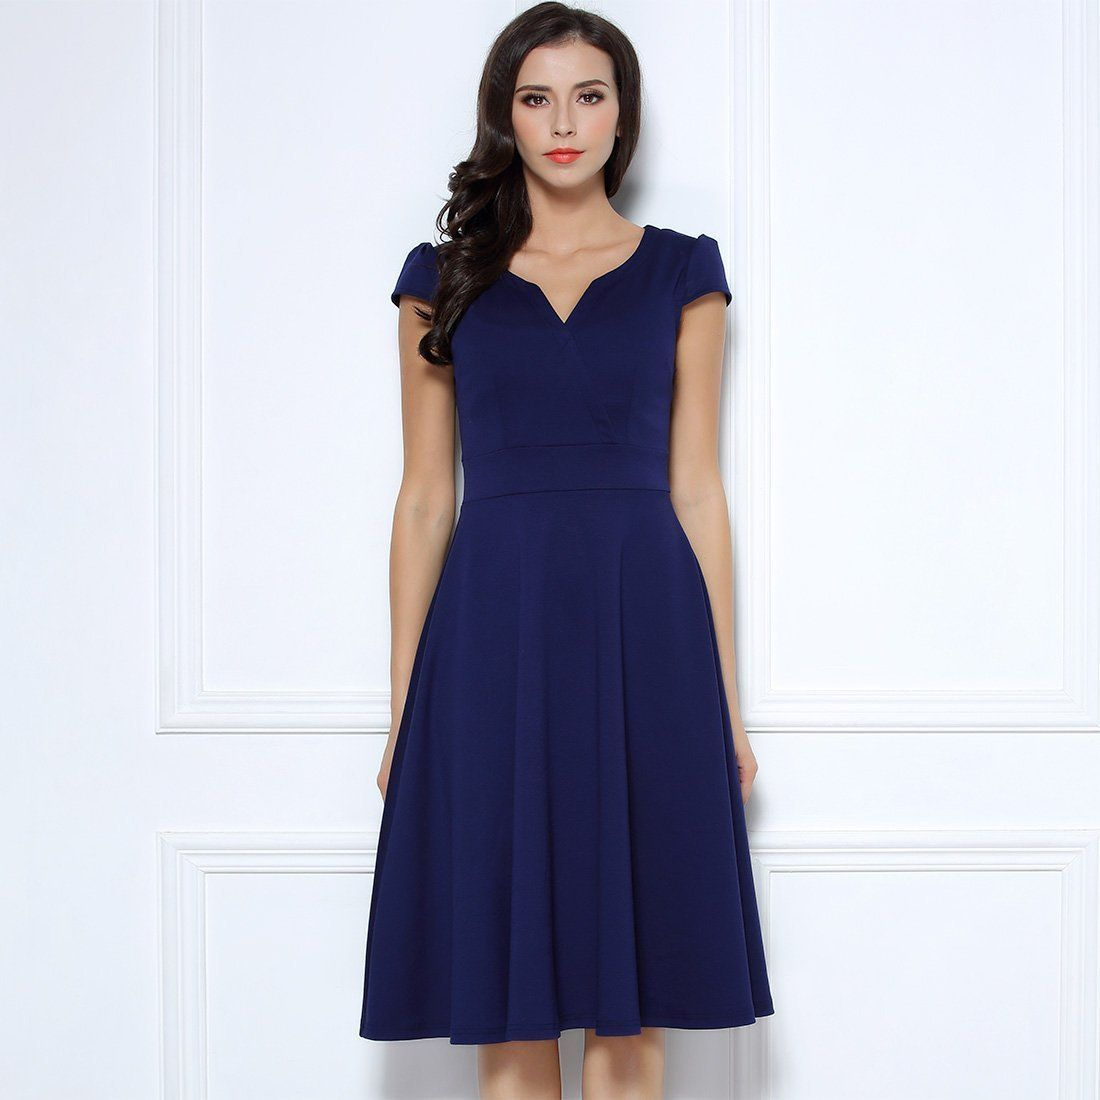 Formal Women\'s Cocktail Dress Casual #dressescasualcocktail ...